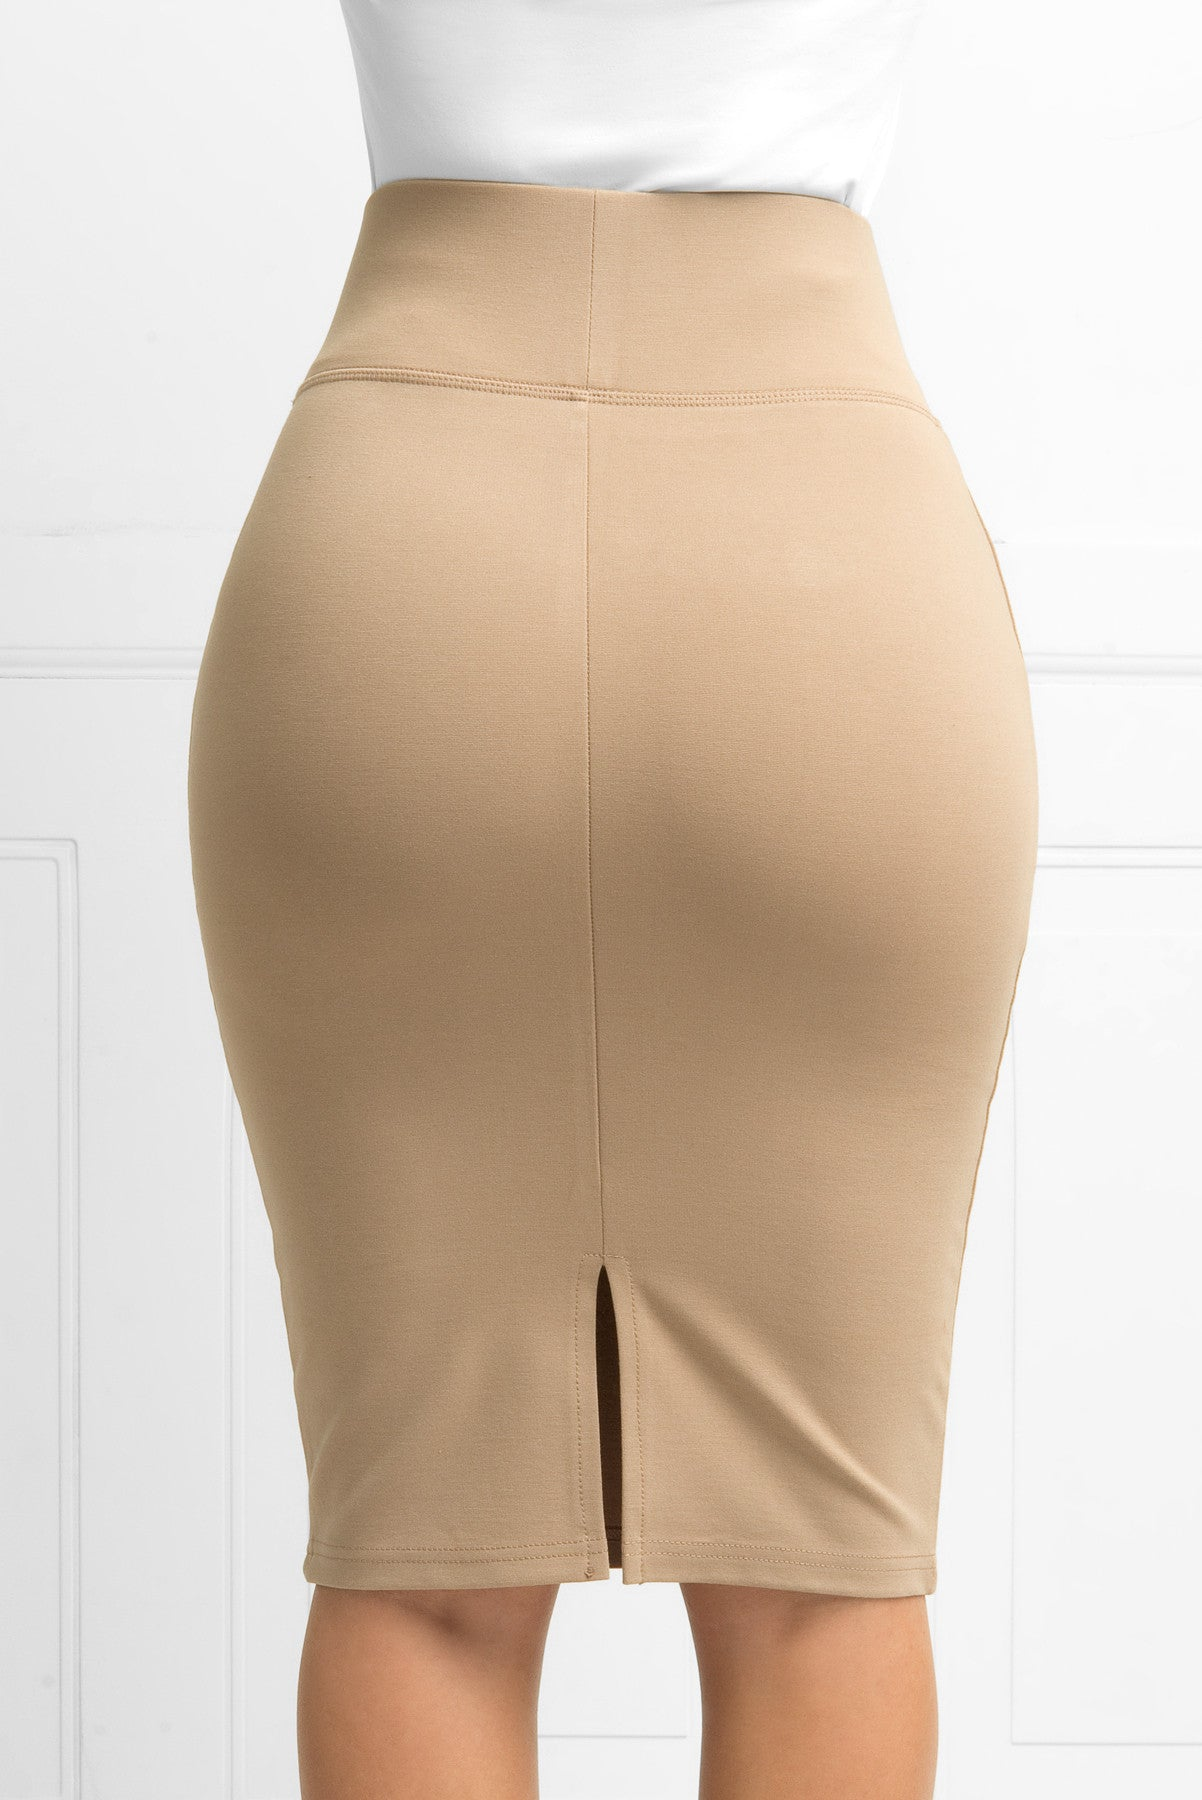 Andy Pencil Skirt Taupe - Fashion Effect Store  - 3